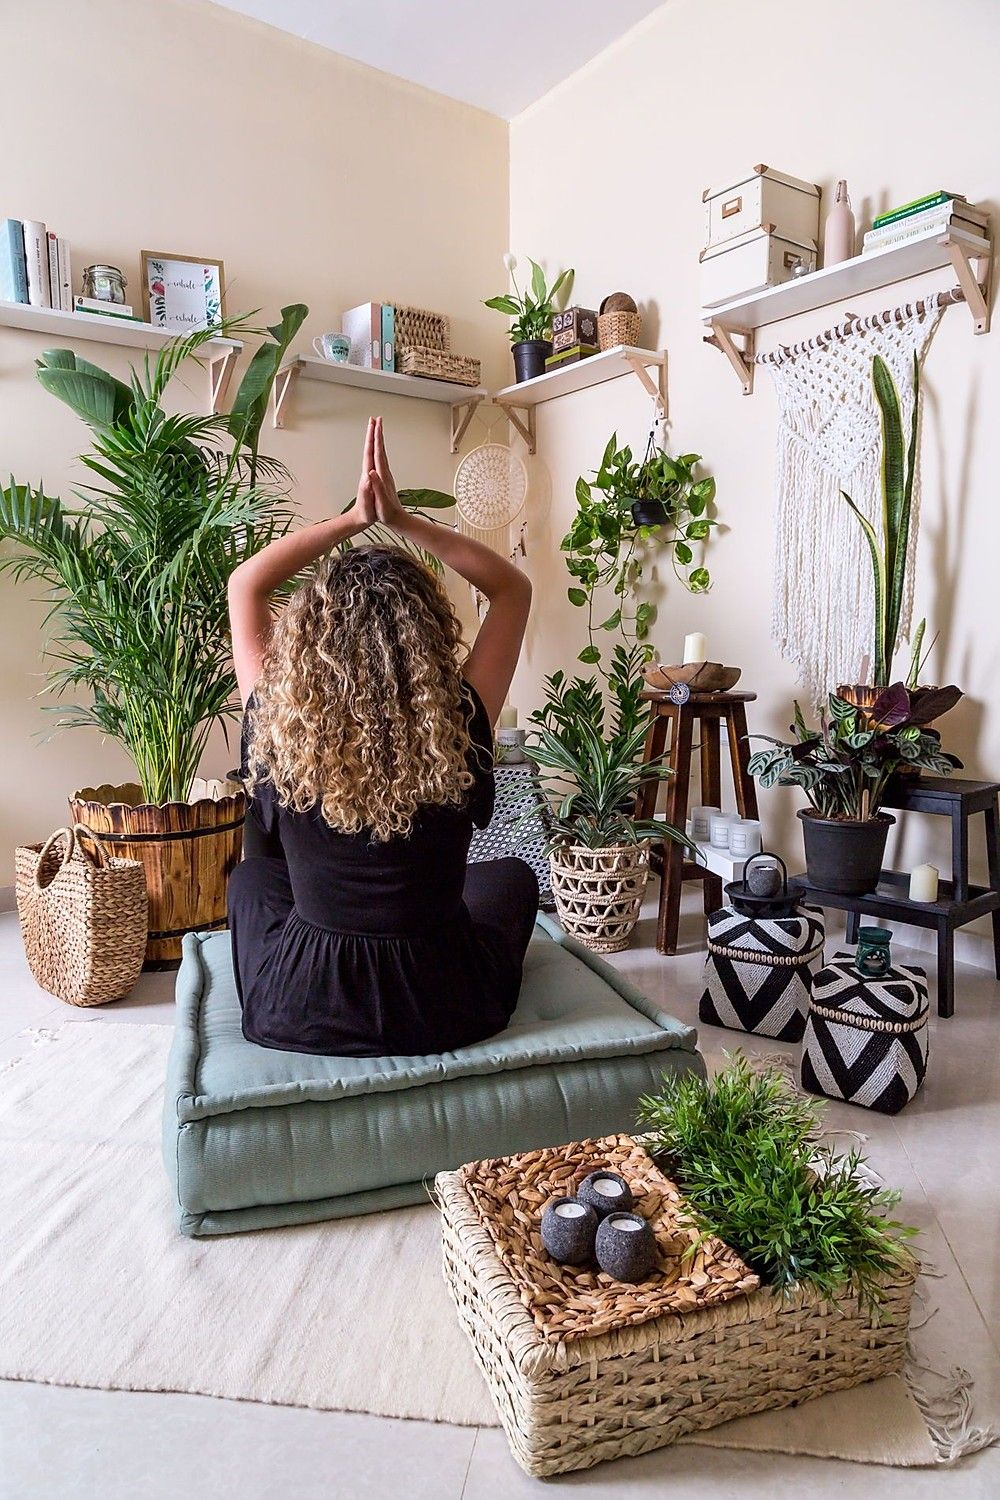 Save Money And Find Zen Yoga Room Decor Meditation Room Decor Meditation Rooms